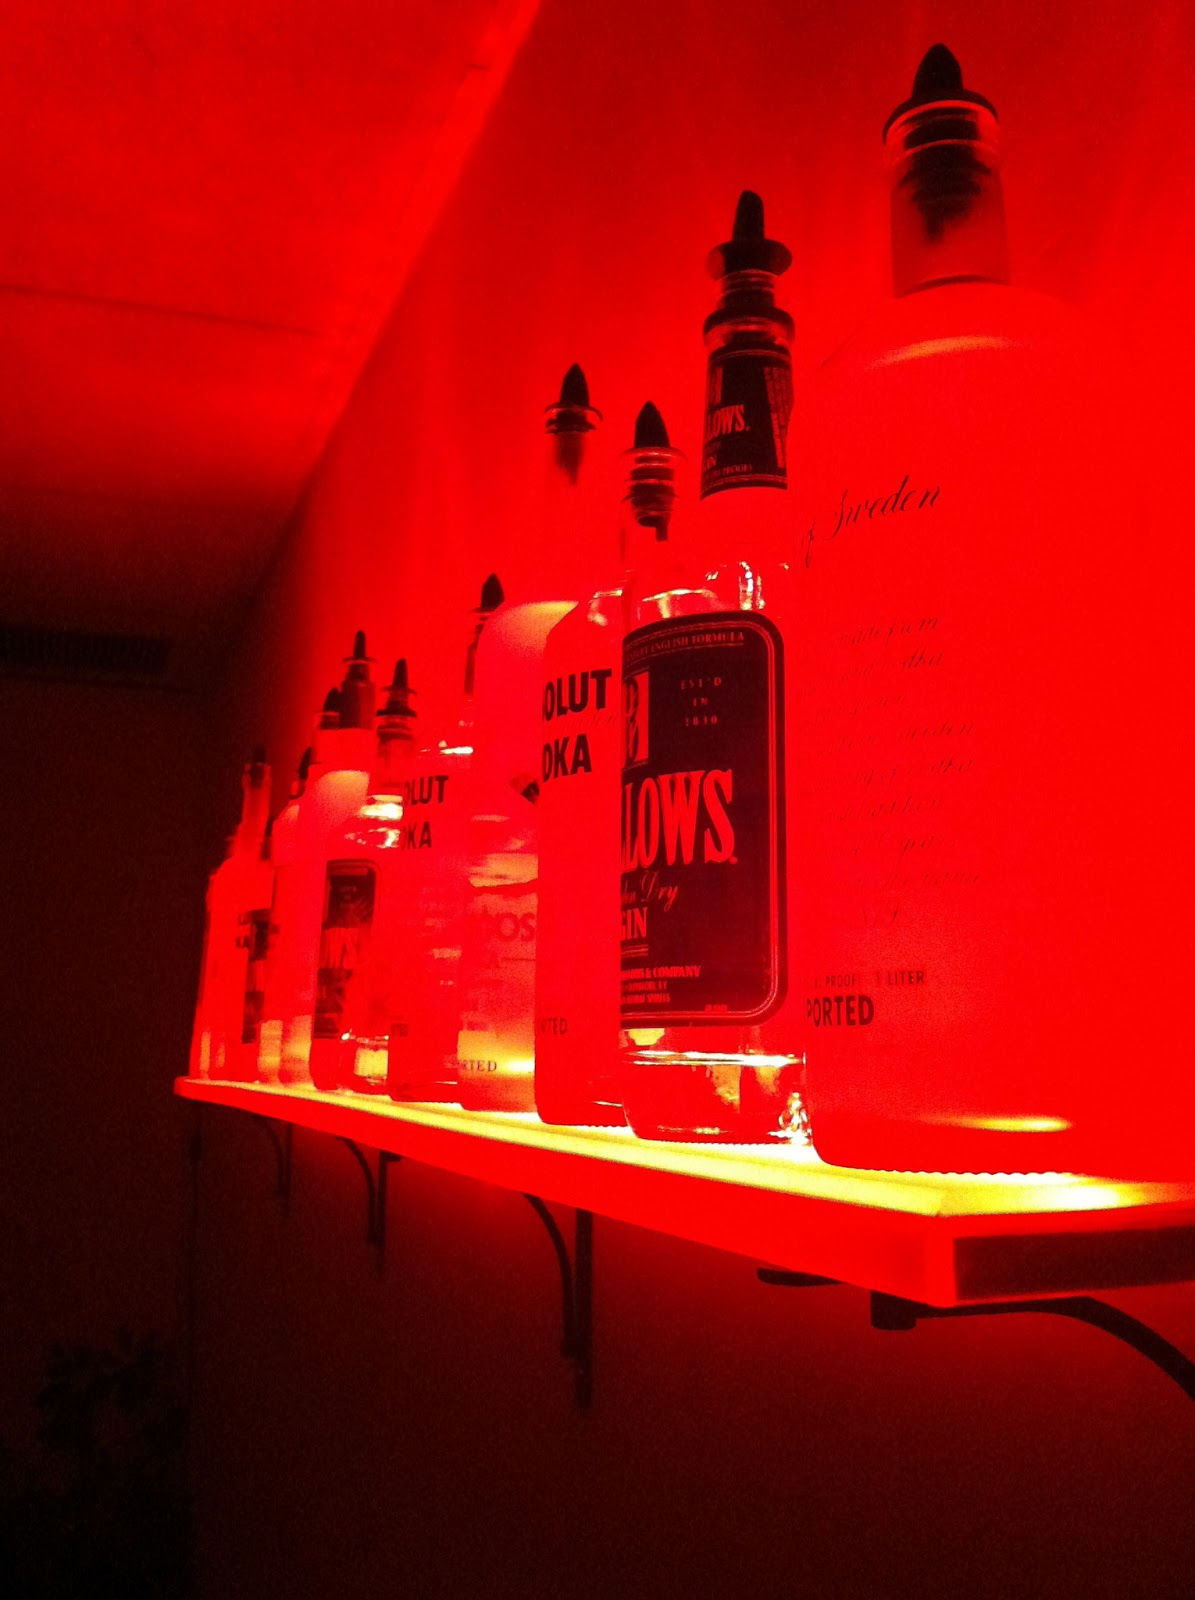 LED Liquor Shelves Display Wall Mount LIQUOR SHELVES